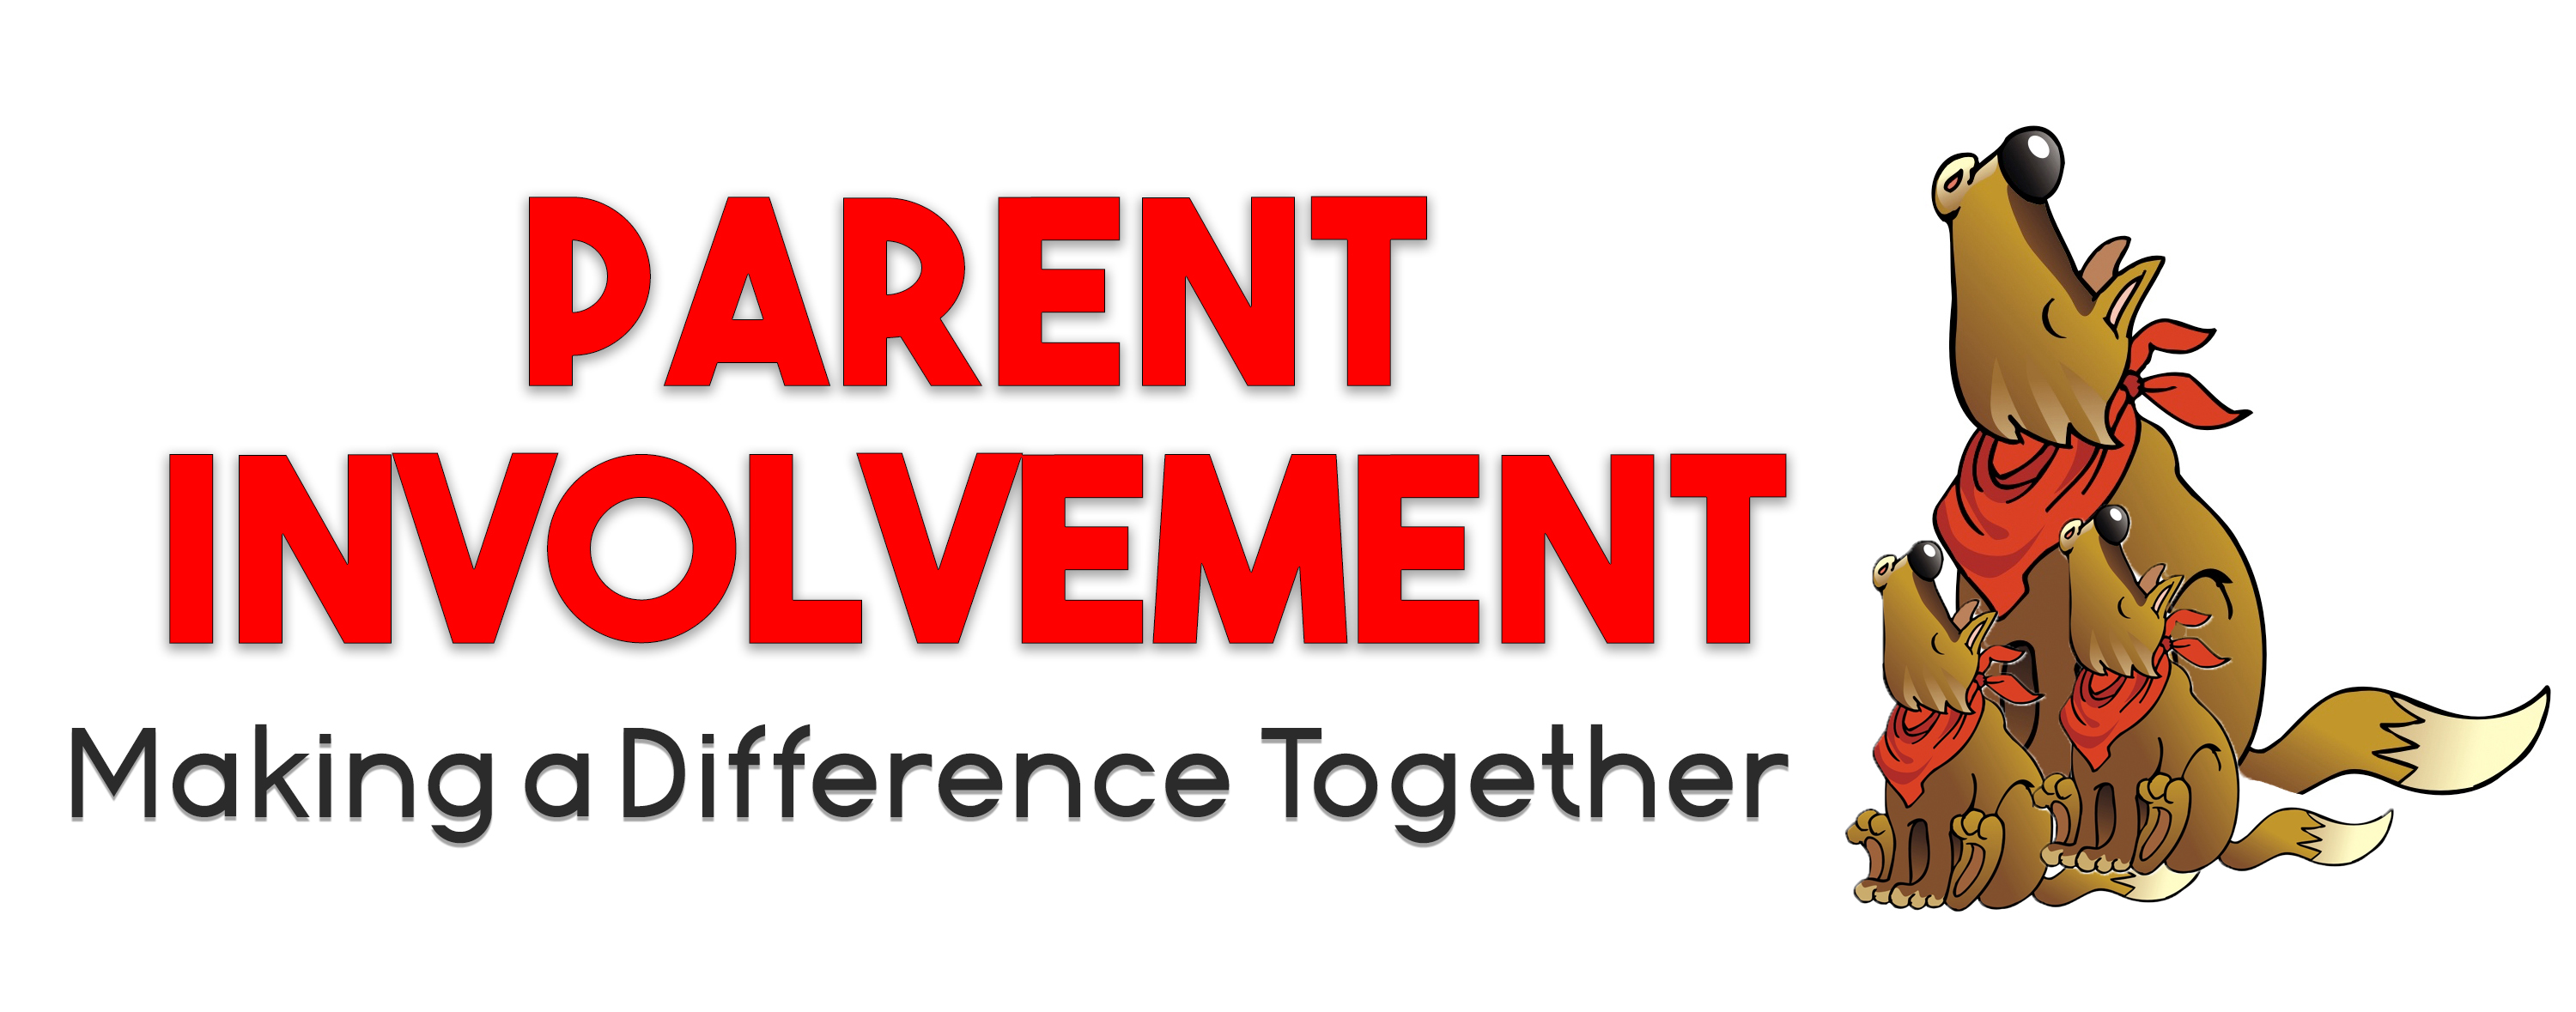 Parent Involvement- Making A Difference Together Parent coyote and young coyotes clipart